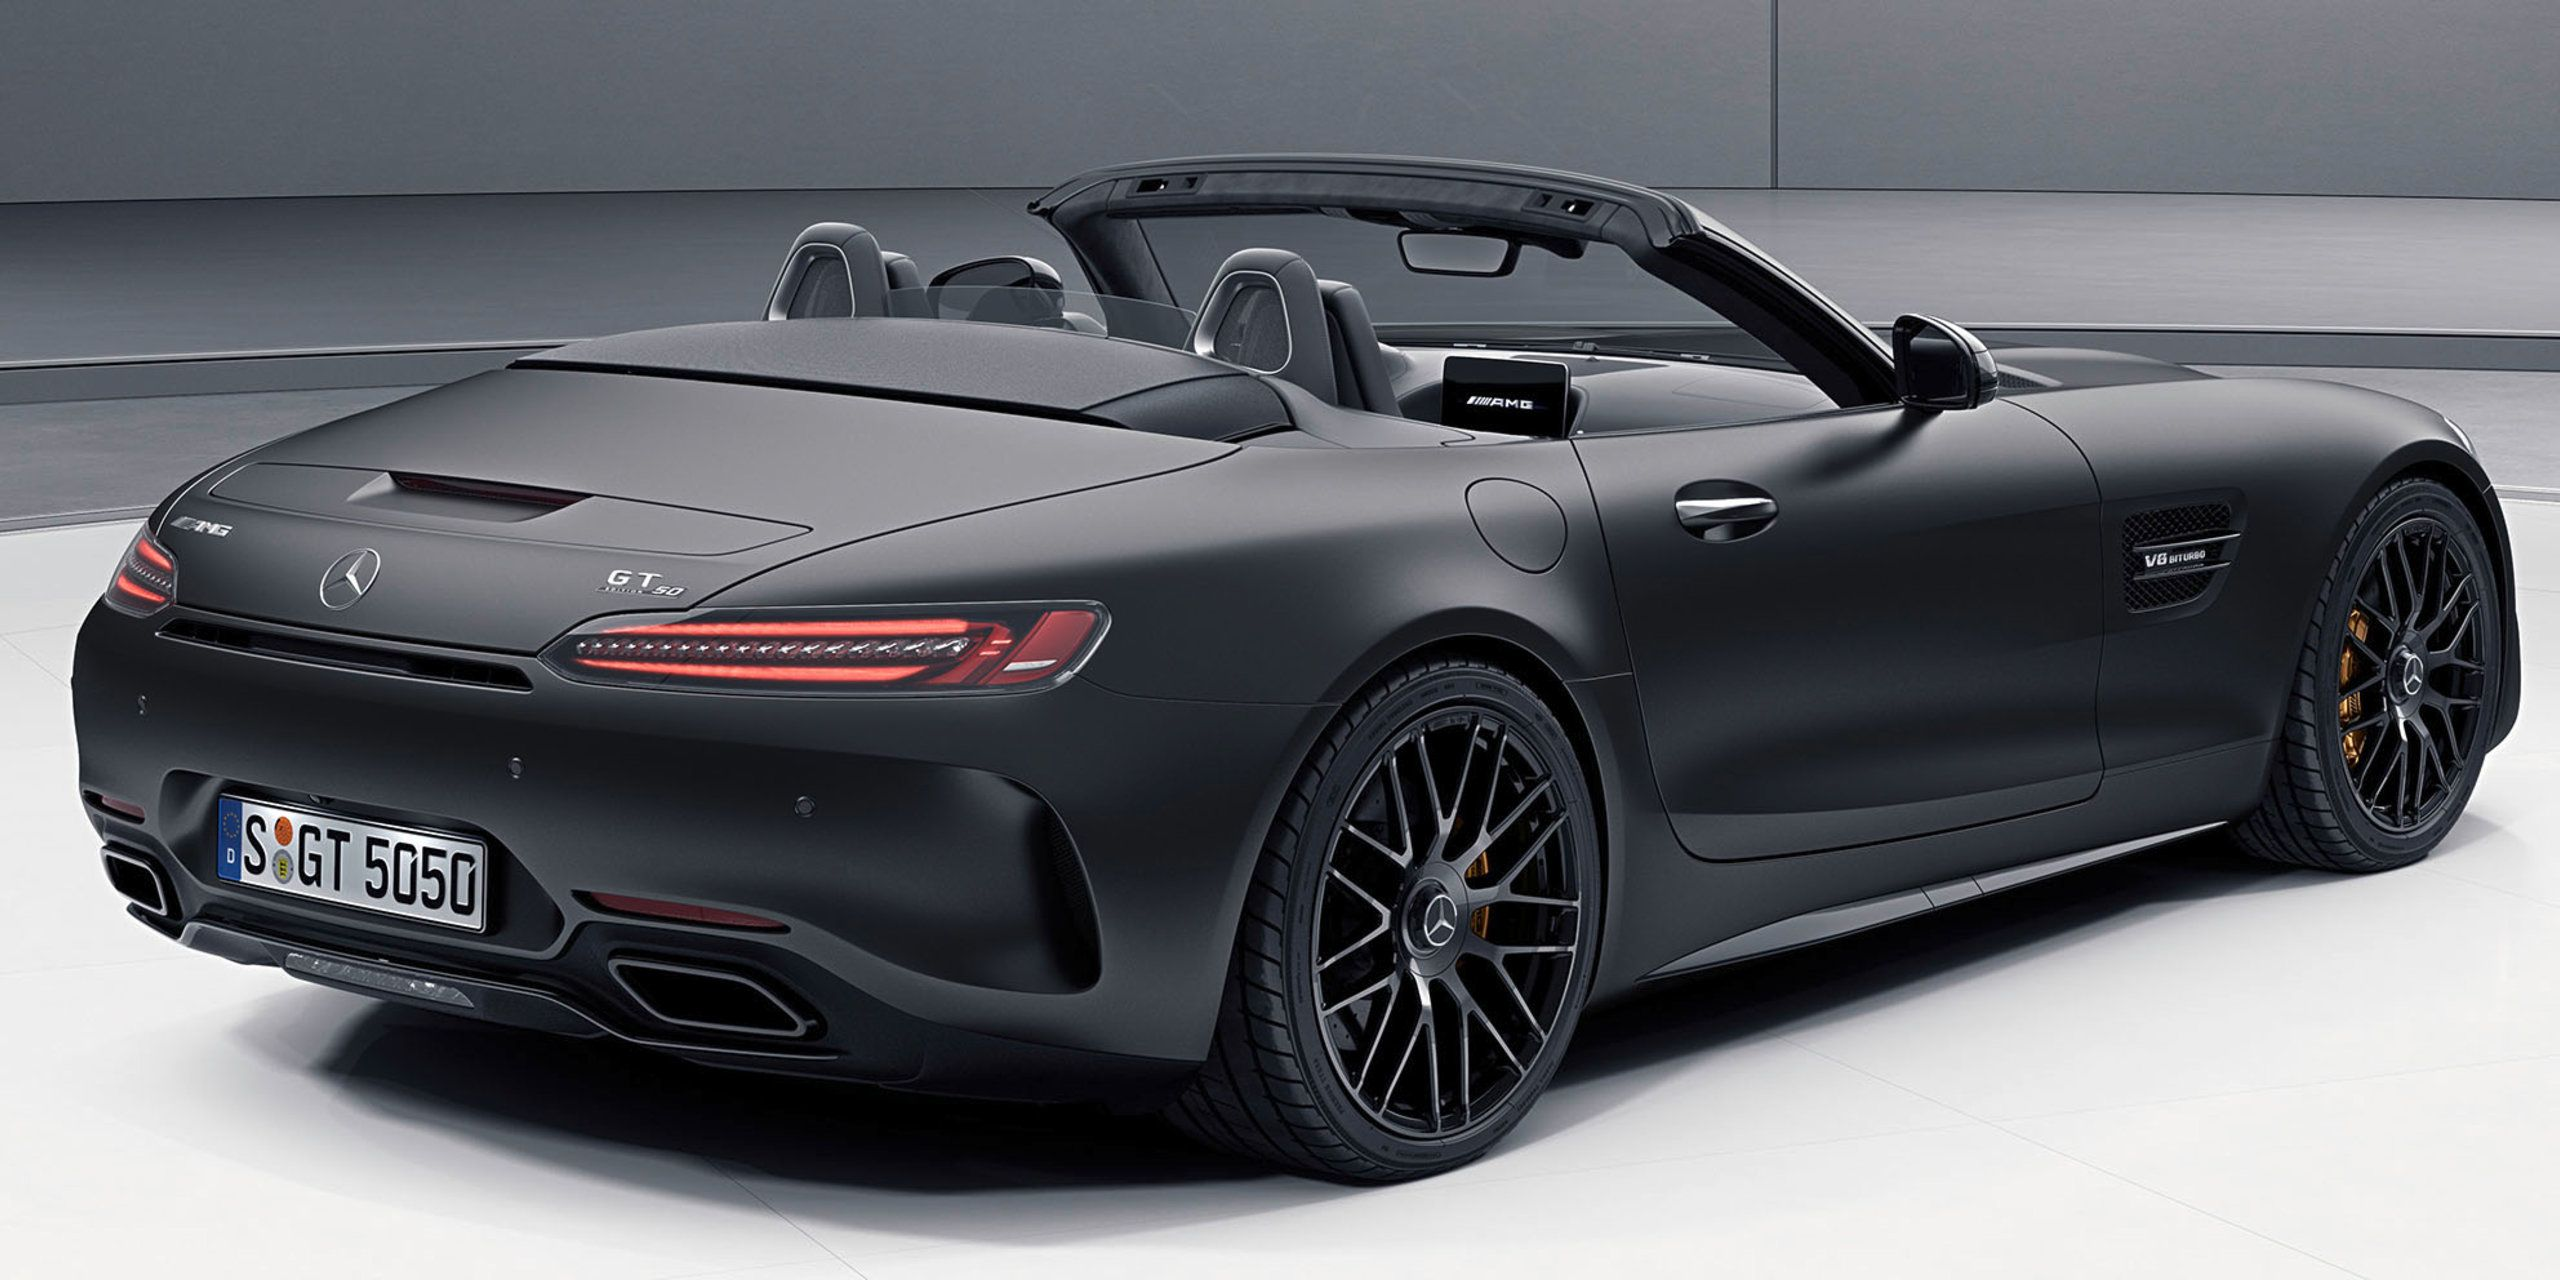 The Mercedes Amg Roadster Gt C Roadster Edition 50 Mit Bildern